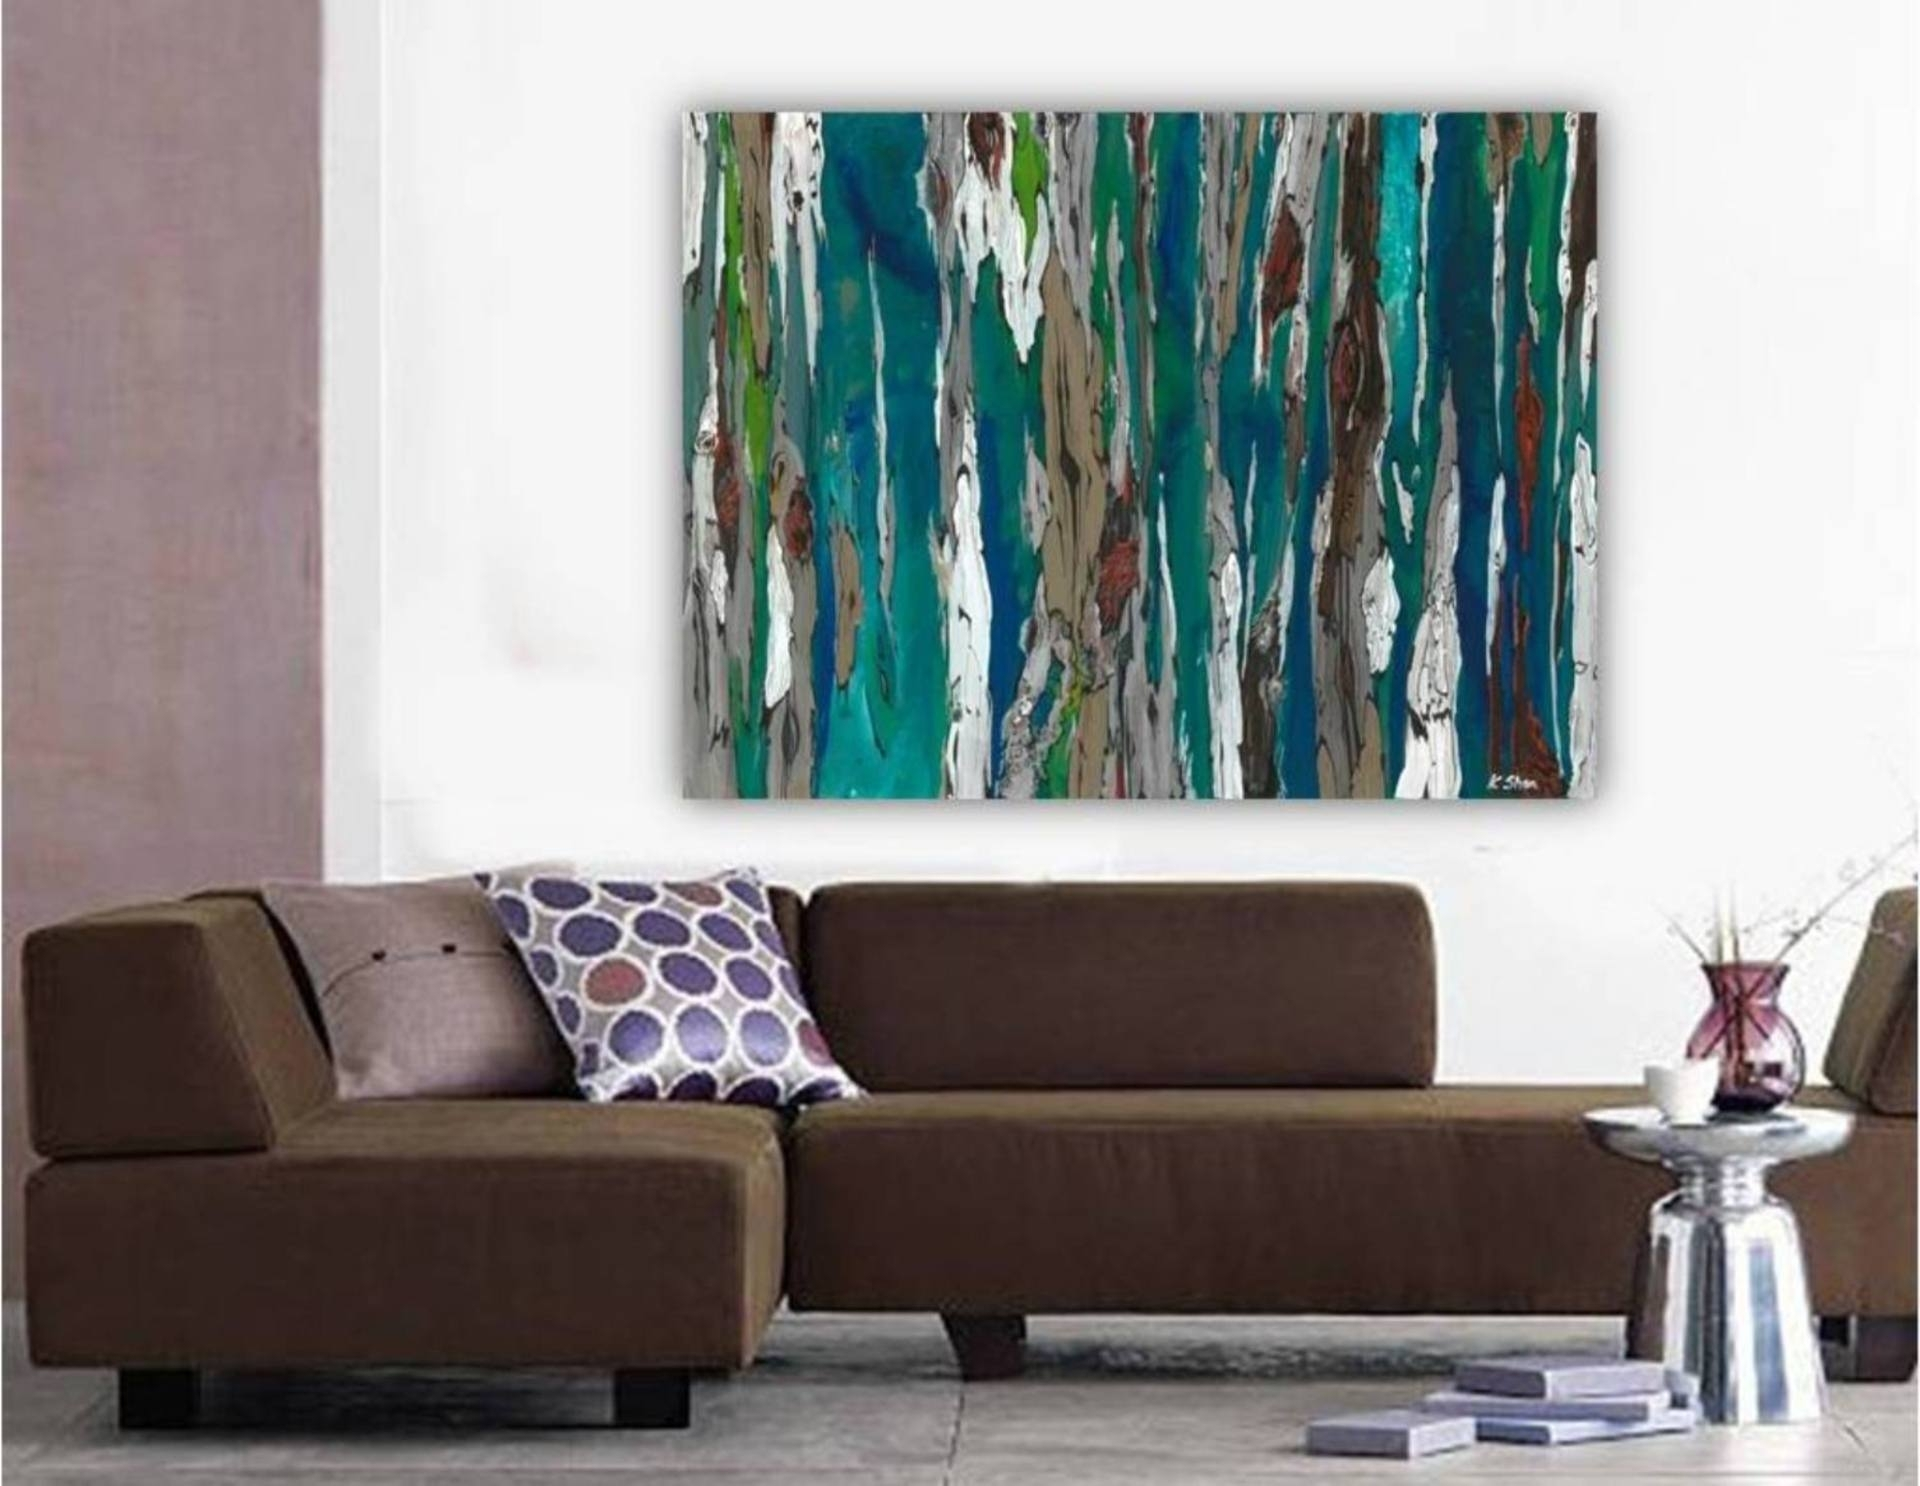 Saatchi Art: Large Contemporary Original Abstract Tree Landscape With Best And Newest Blue And Brown Abstract Wall Art (View 14 of 20)